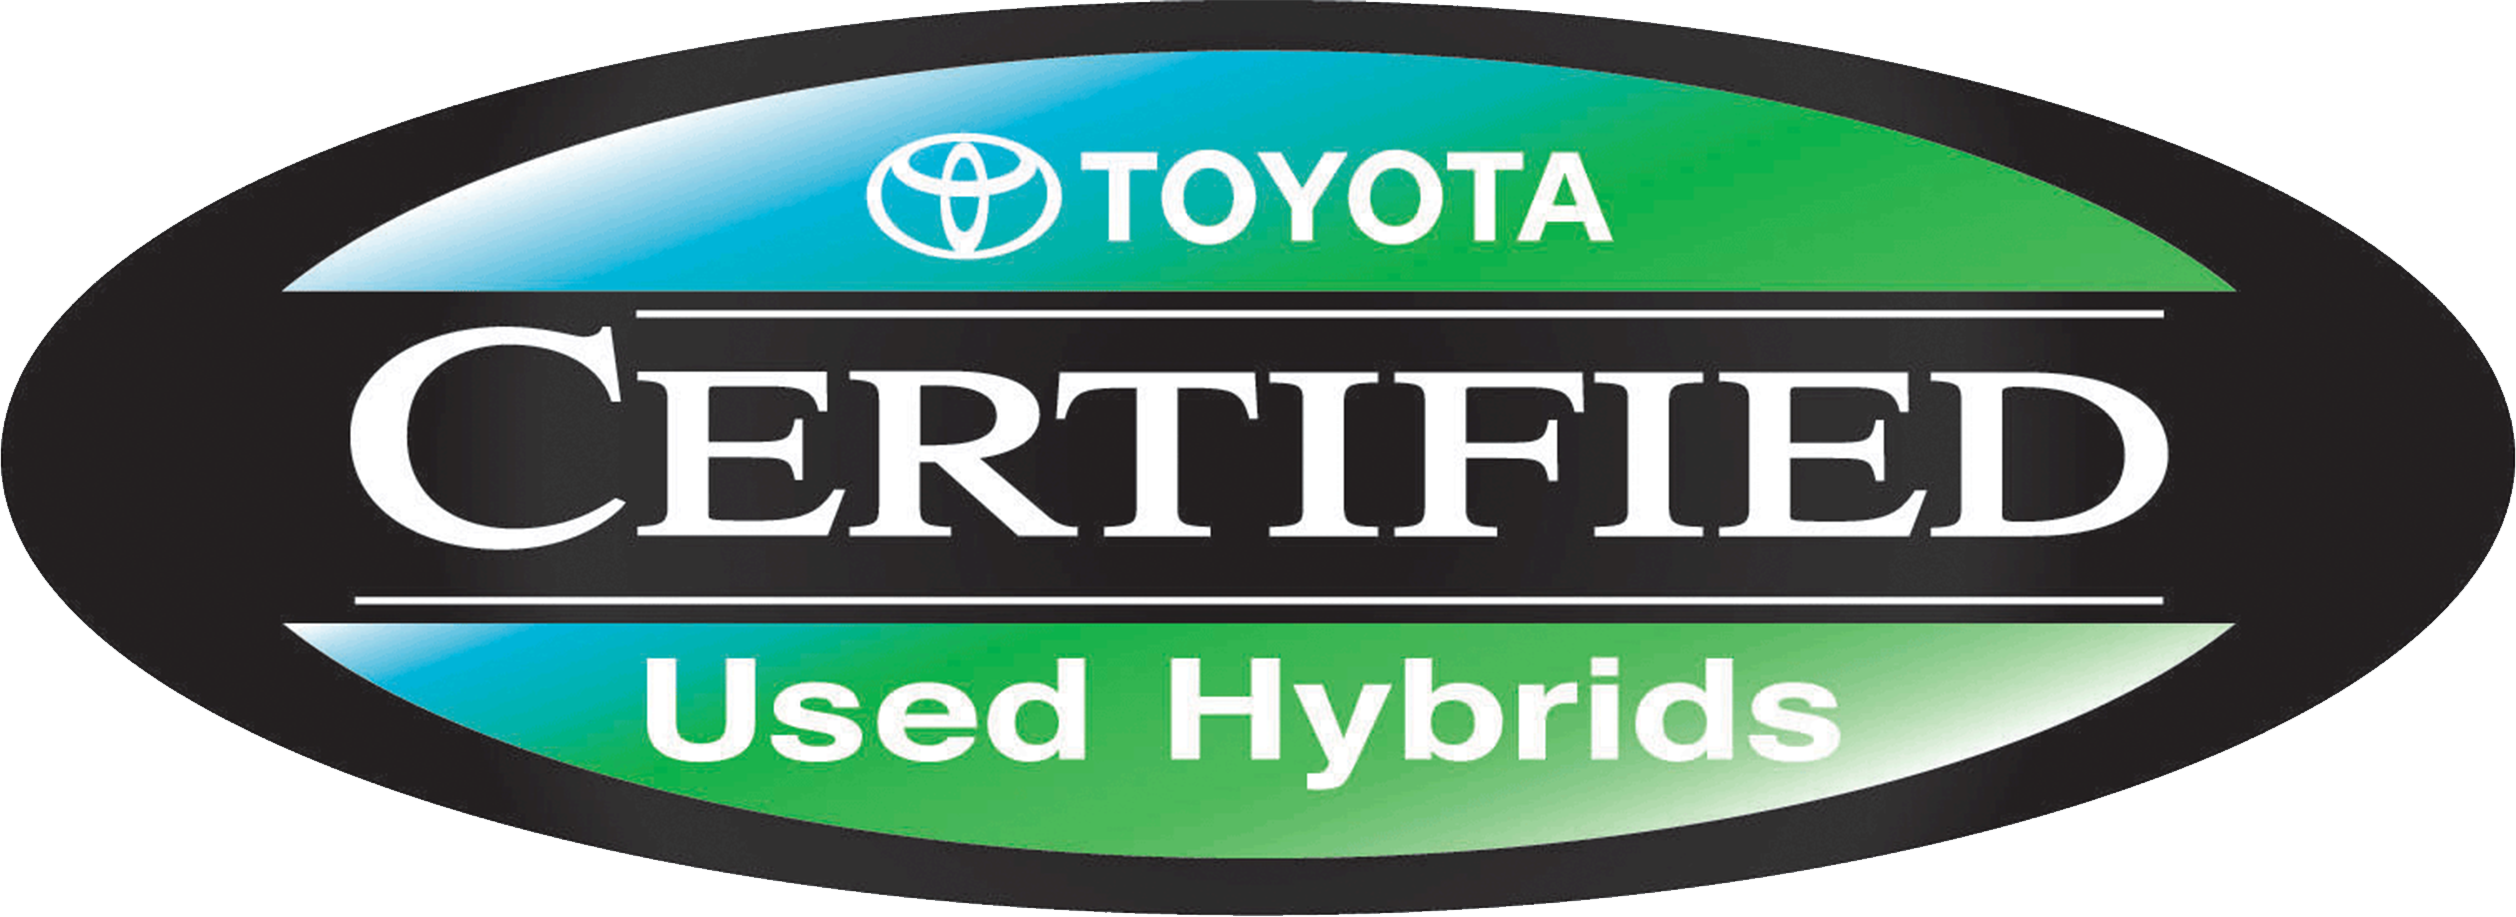 Certified Hybrid Vehicles